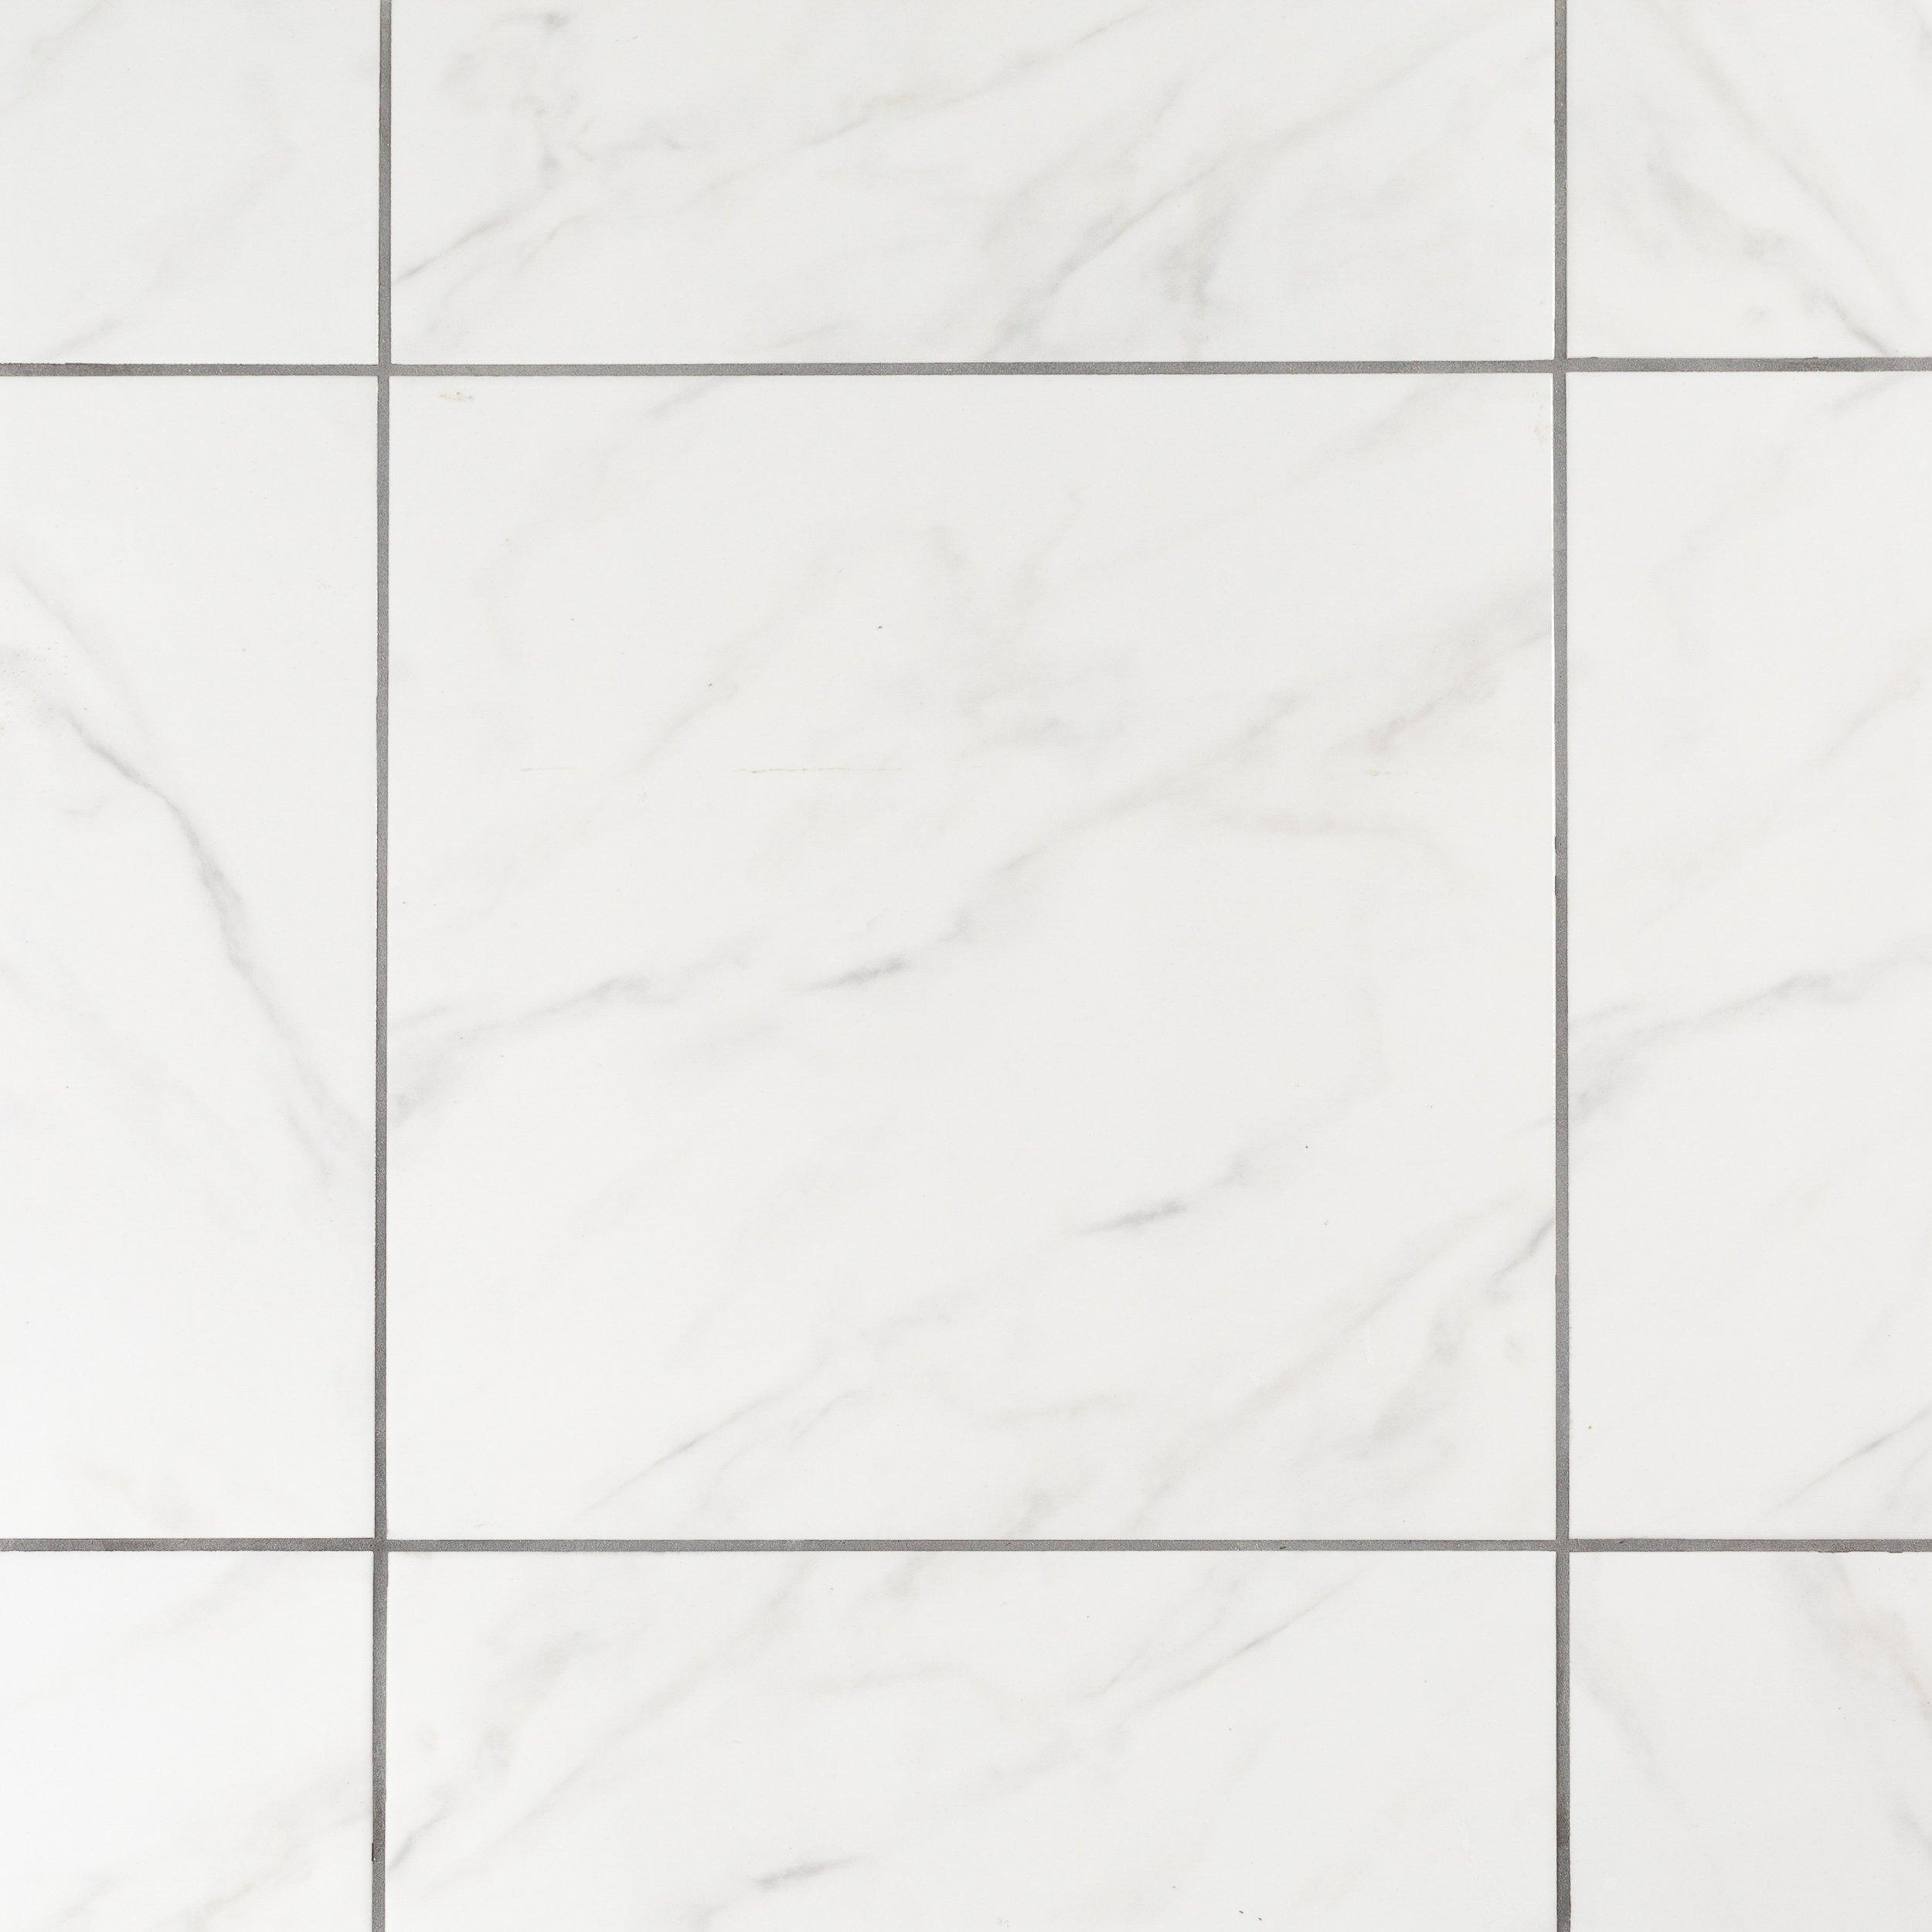 Basic white 3x6 polished ceramic wall tile tilebar with ceramic ceramic white tile amusing silver white ceramic tile 21inx 21in 100011352 floor and design inspiration doublecrazyfo Choice Image